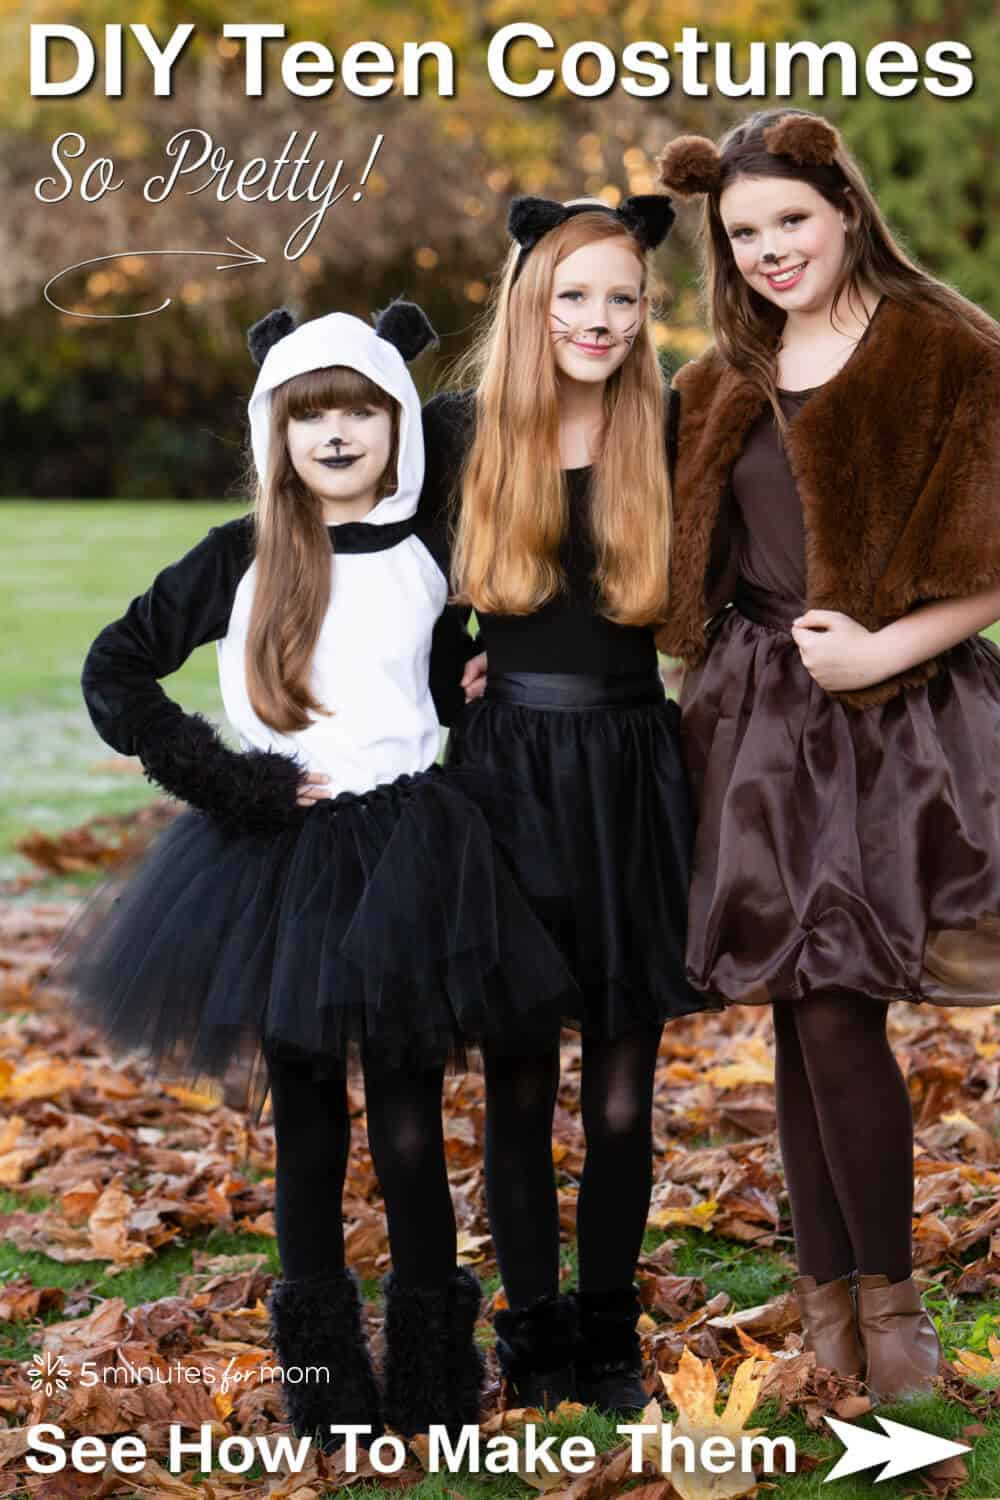 """Three teen girls wearing pretty DIY Halloween costumes: panda, black cat, and brown bear. Text on image reads """"DIY Teen Costumes - See How to Make Them"""""""